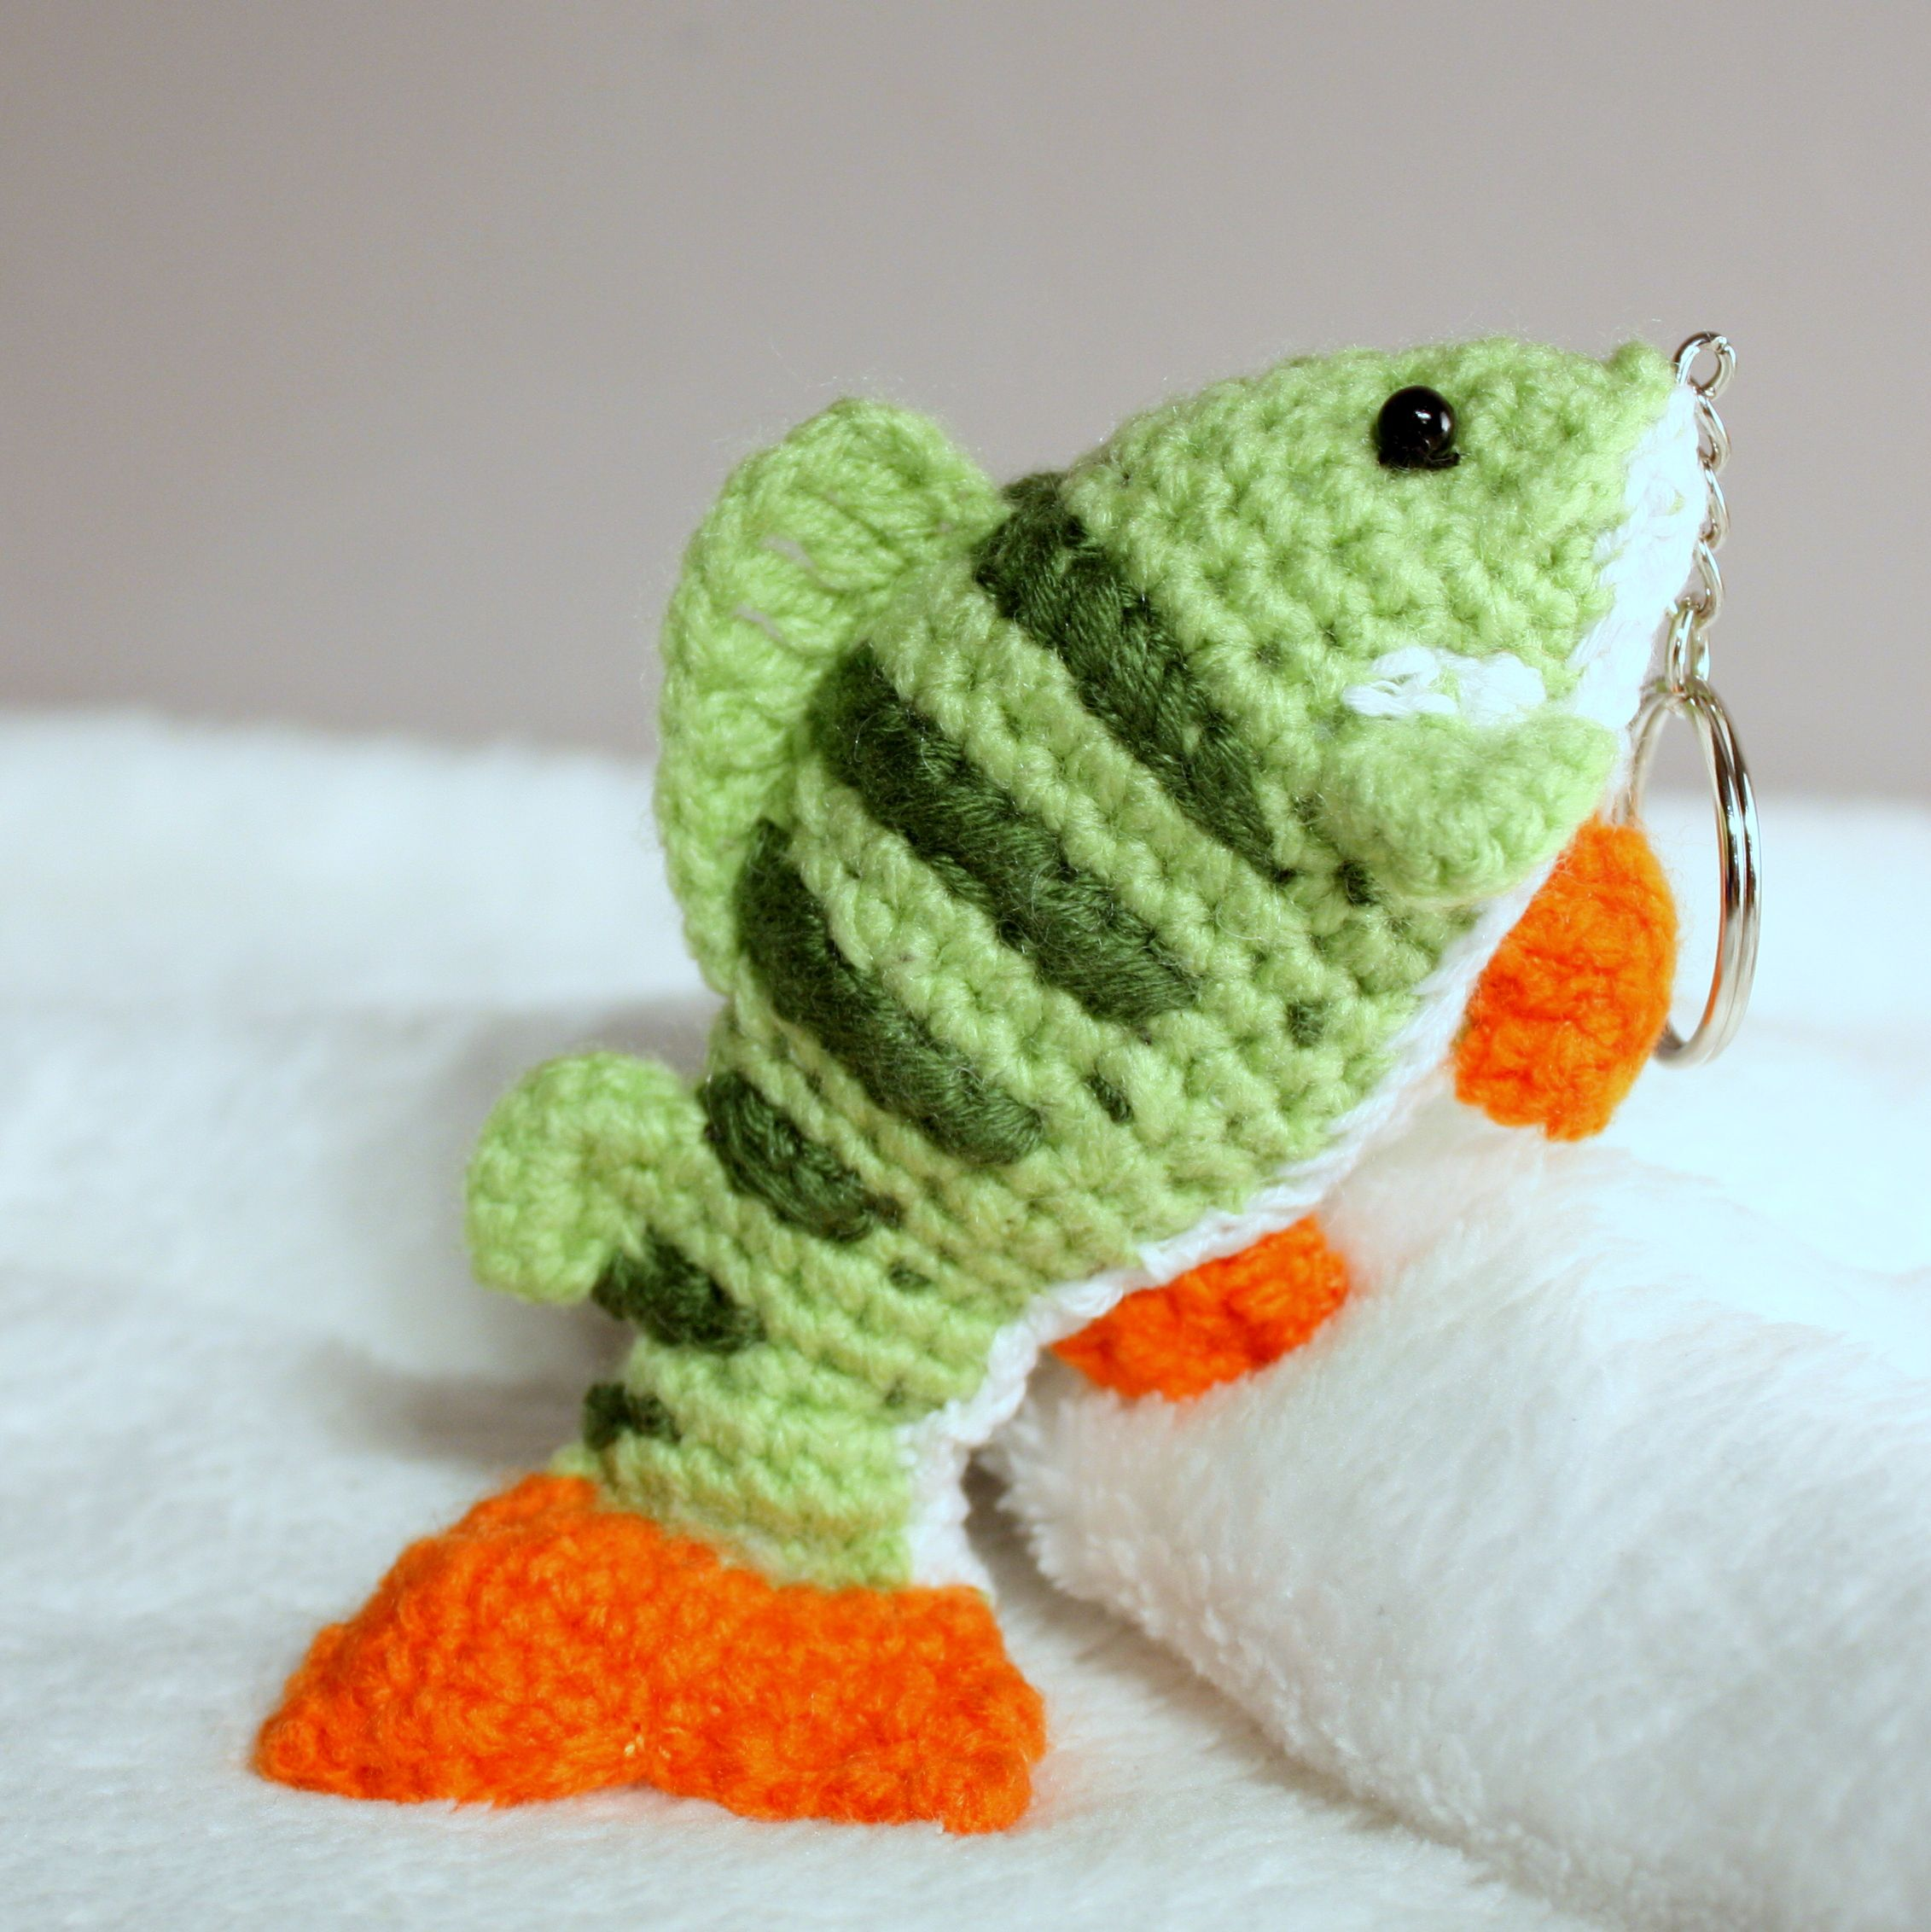 Amigurumi oko amigurumi amigurumis perch oko crochet fish amigurumi oko amigurumi amigurumis perch oko crochet fish cute bankloansurffo Choice Image